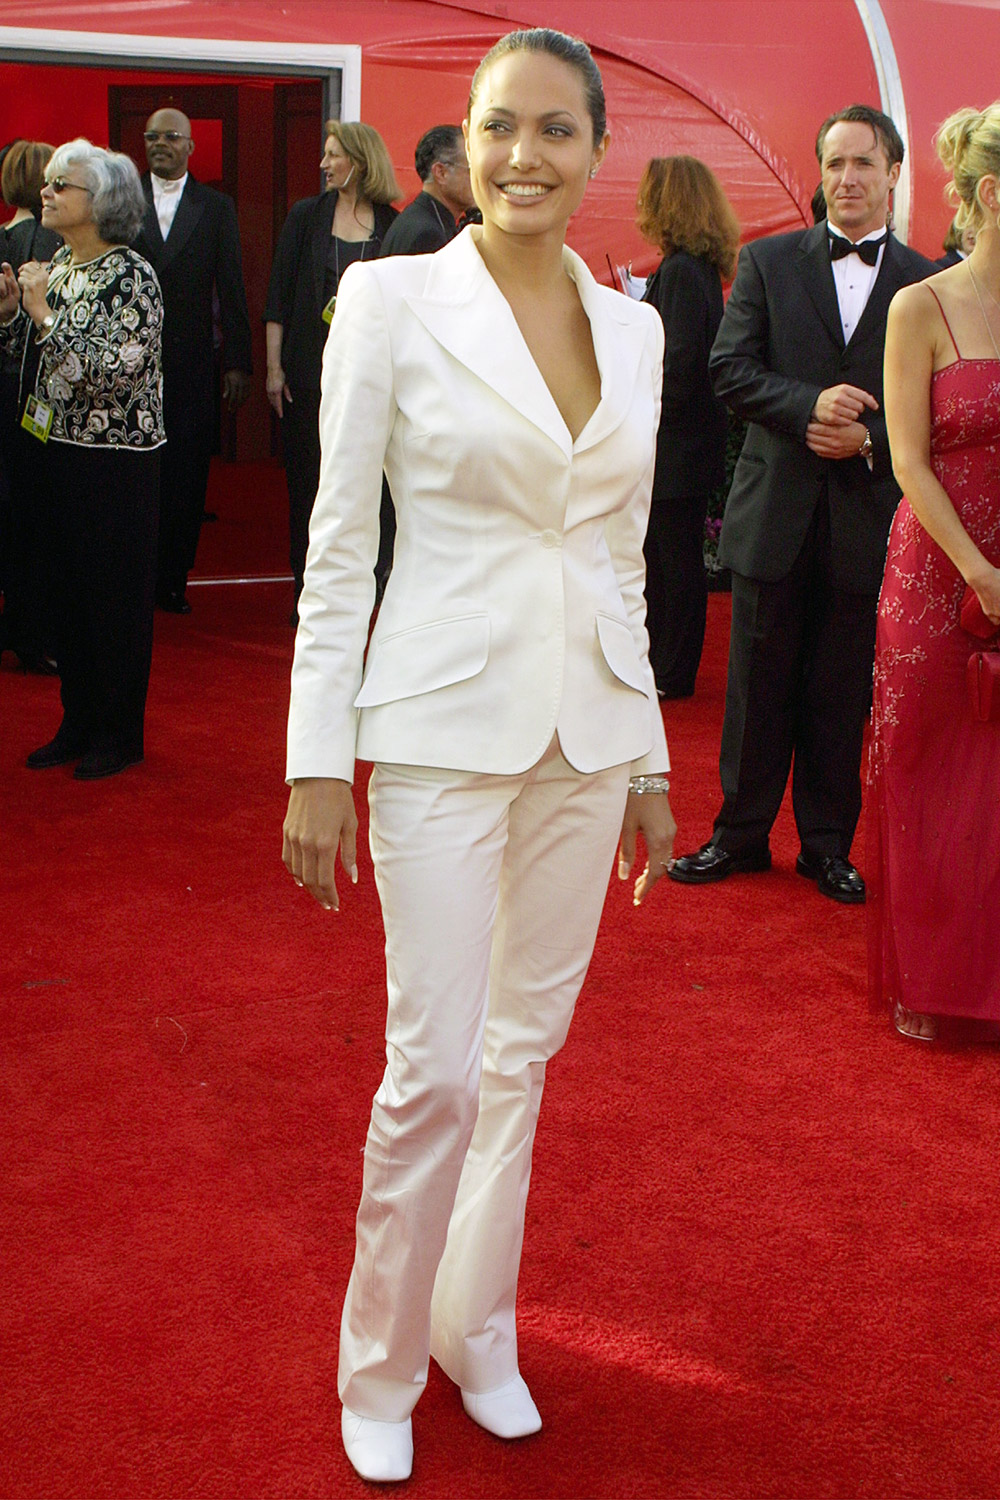 Angelina Jolie arriving for the 73rd Academy Awards